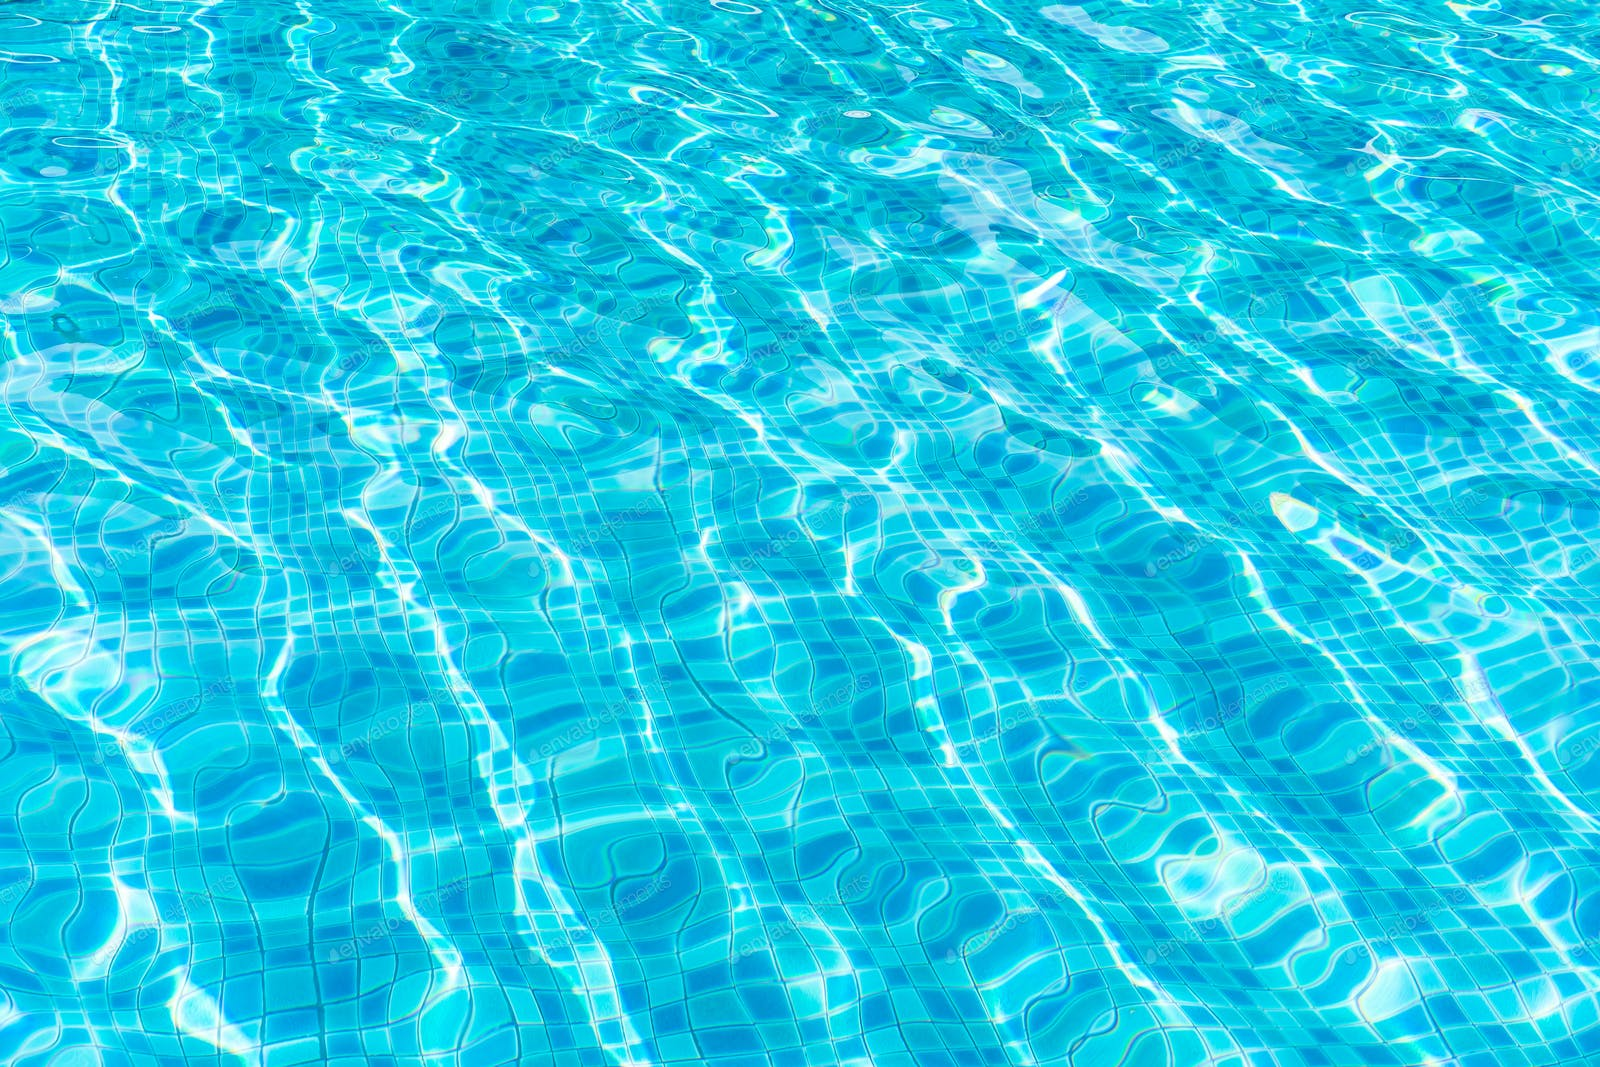 Abstract Pool Water Texture For Background Photo By Siraphol On Envato Elements